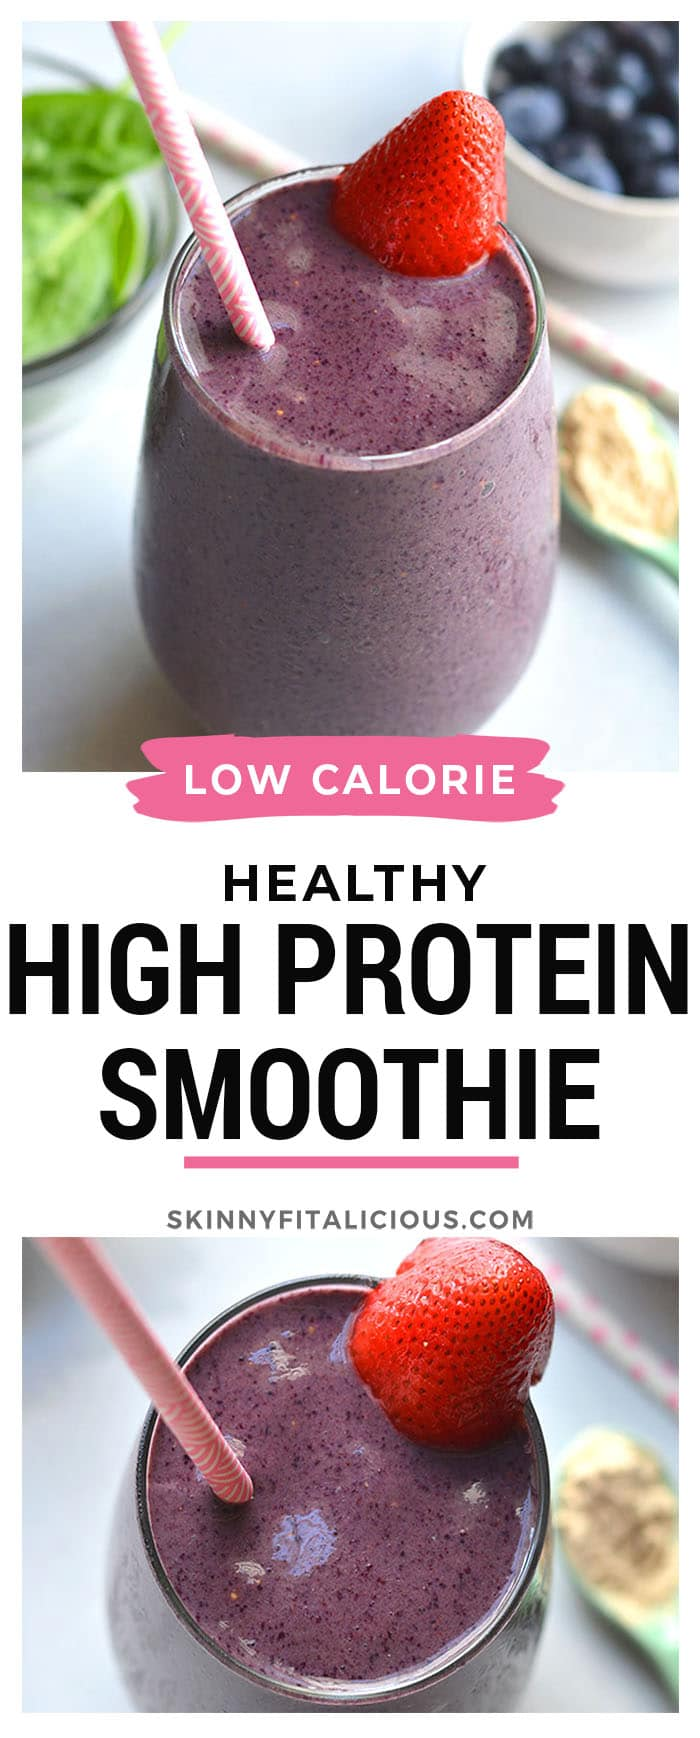 Healthy High Protein Smoothie for weight loss will keep you full and prevent cravings so you can reach your weight loss goals. Made with protein, vegetables and fruit, this easy recipe is great for breakfast or a snack. Low Calorie + Gluten Free + Paleo + Vegan